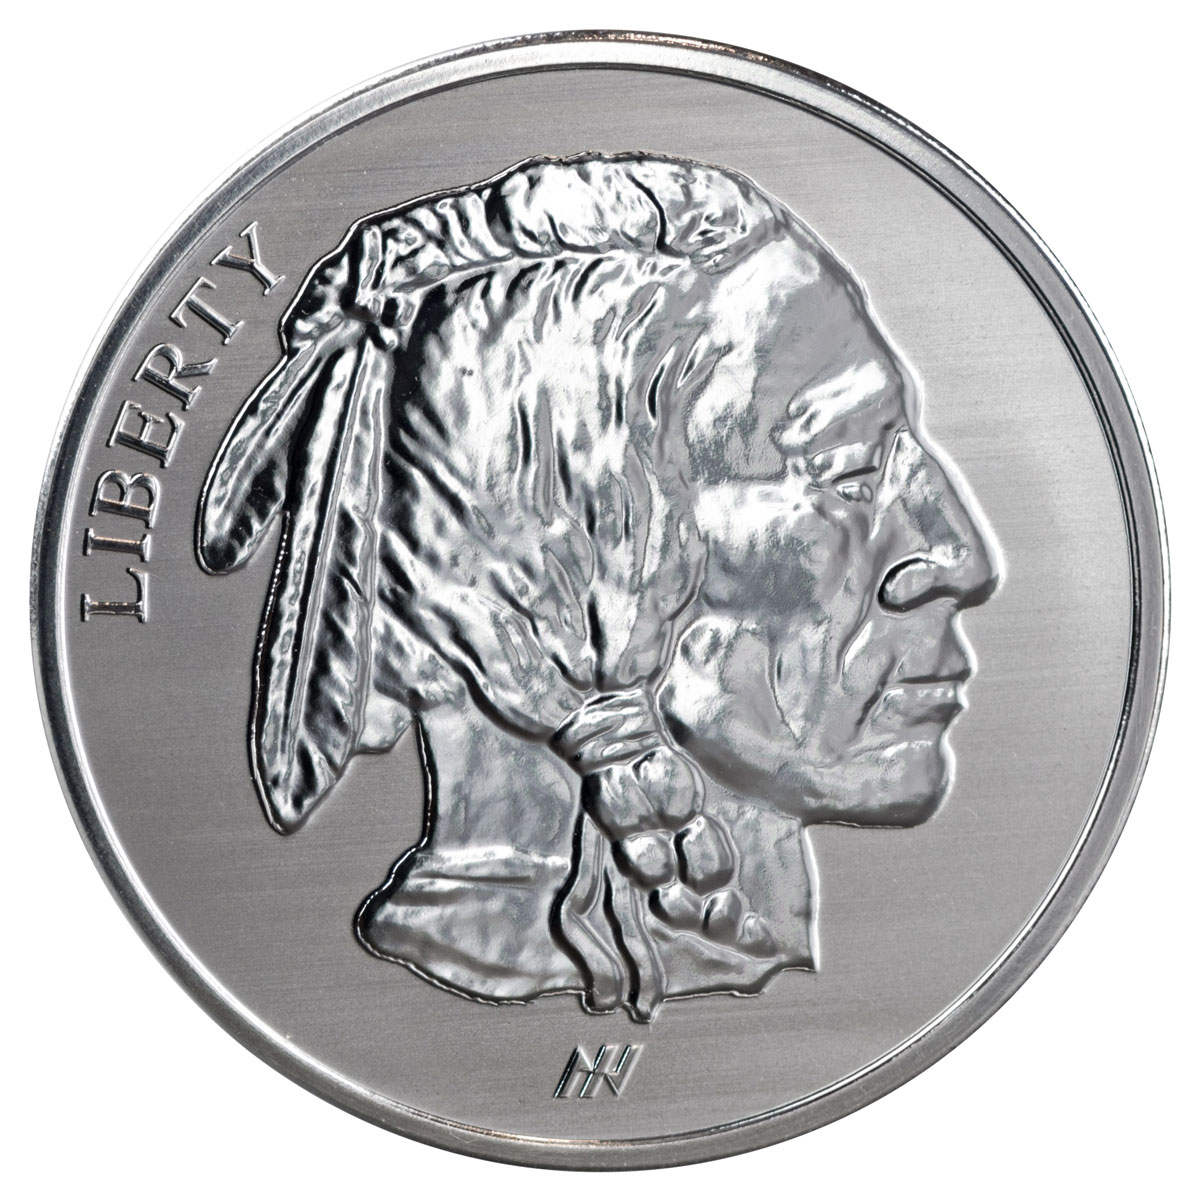 Buffalo Design 1 oz Silver Round Reverse Proof